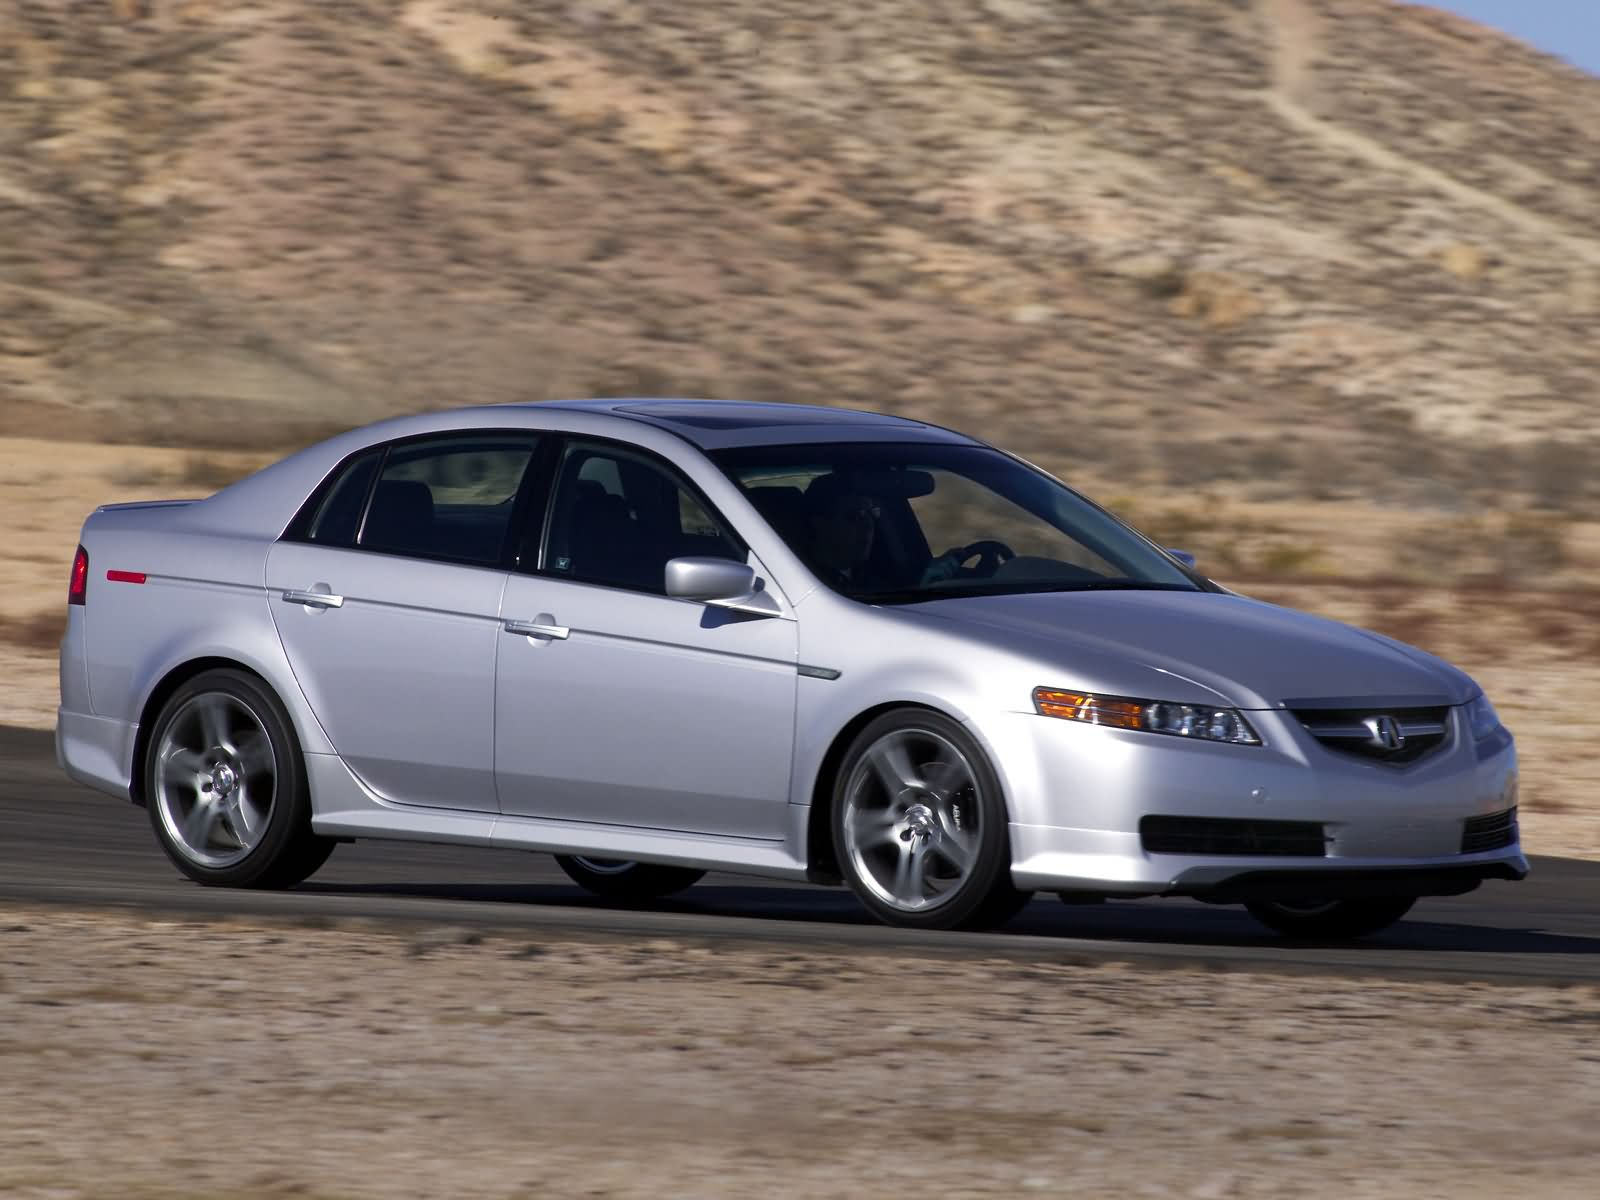 Acura TL A-SPEC photo 17885